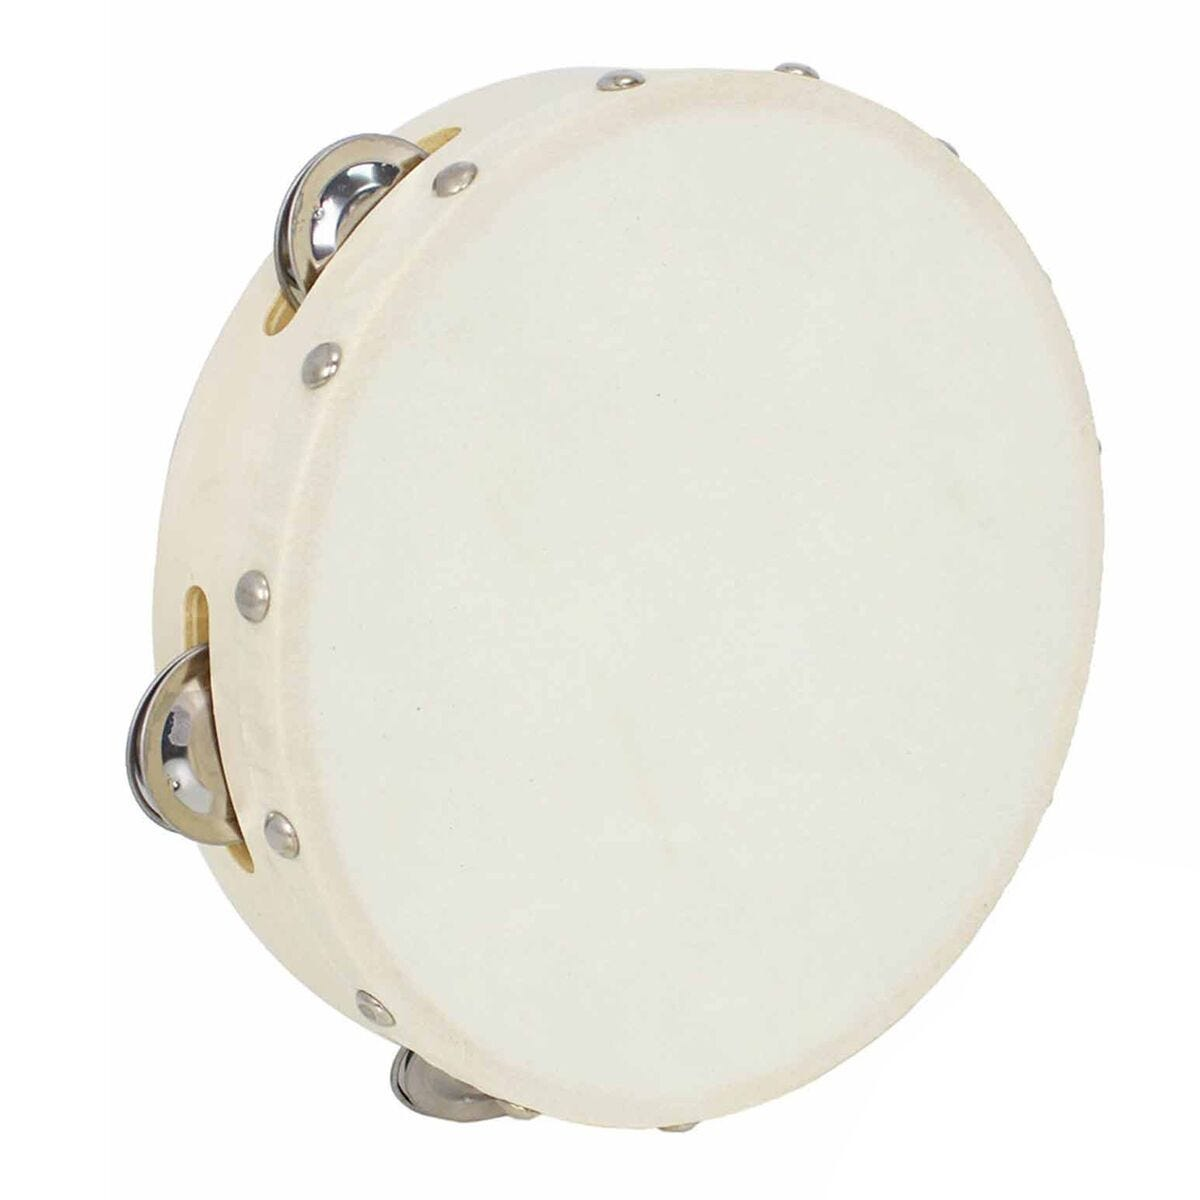 A-Star 8 Inch Tambourine Pack of 10